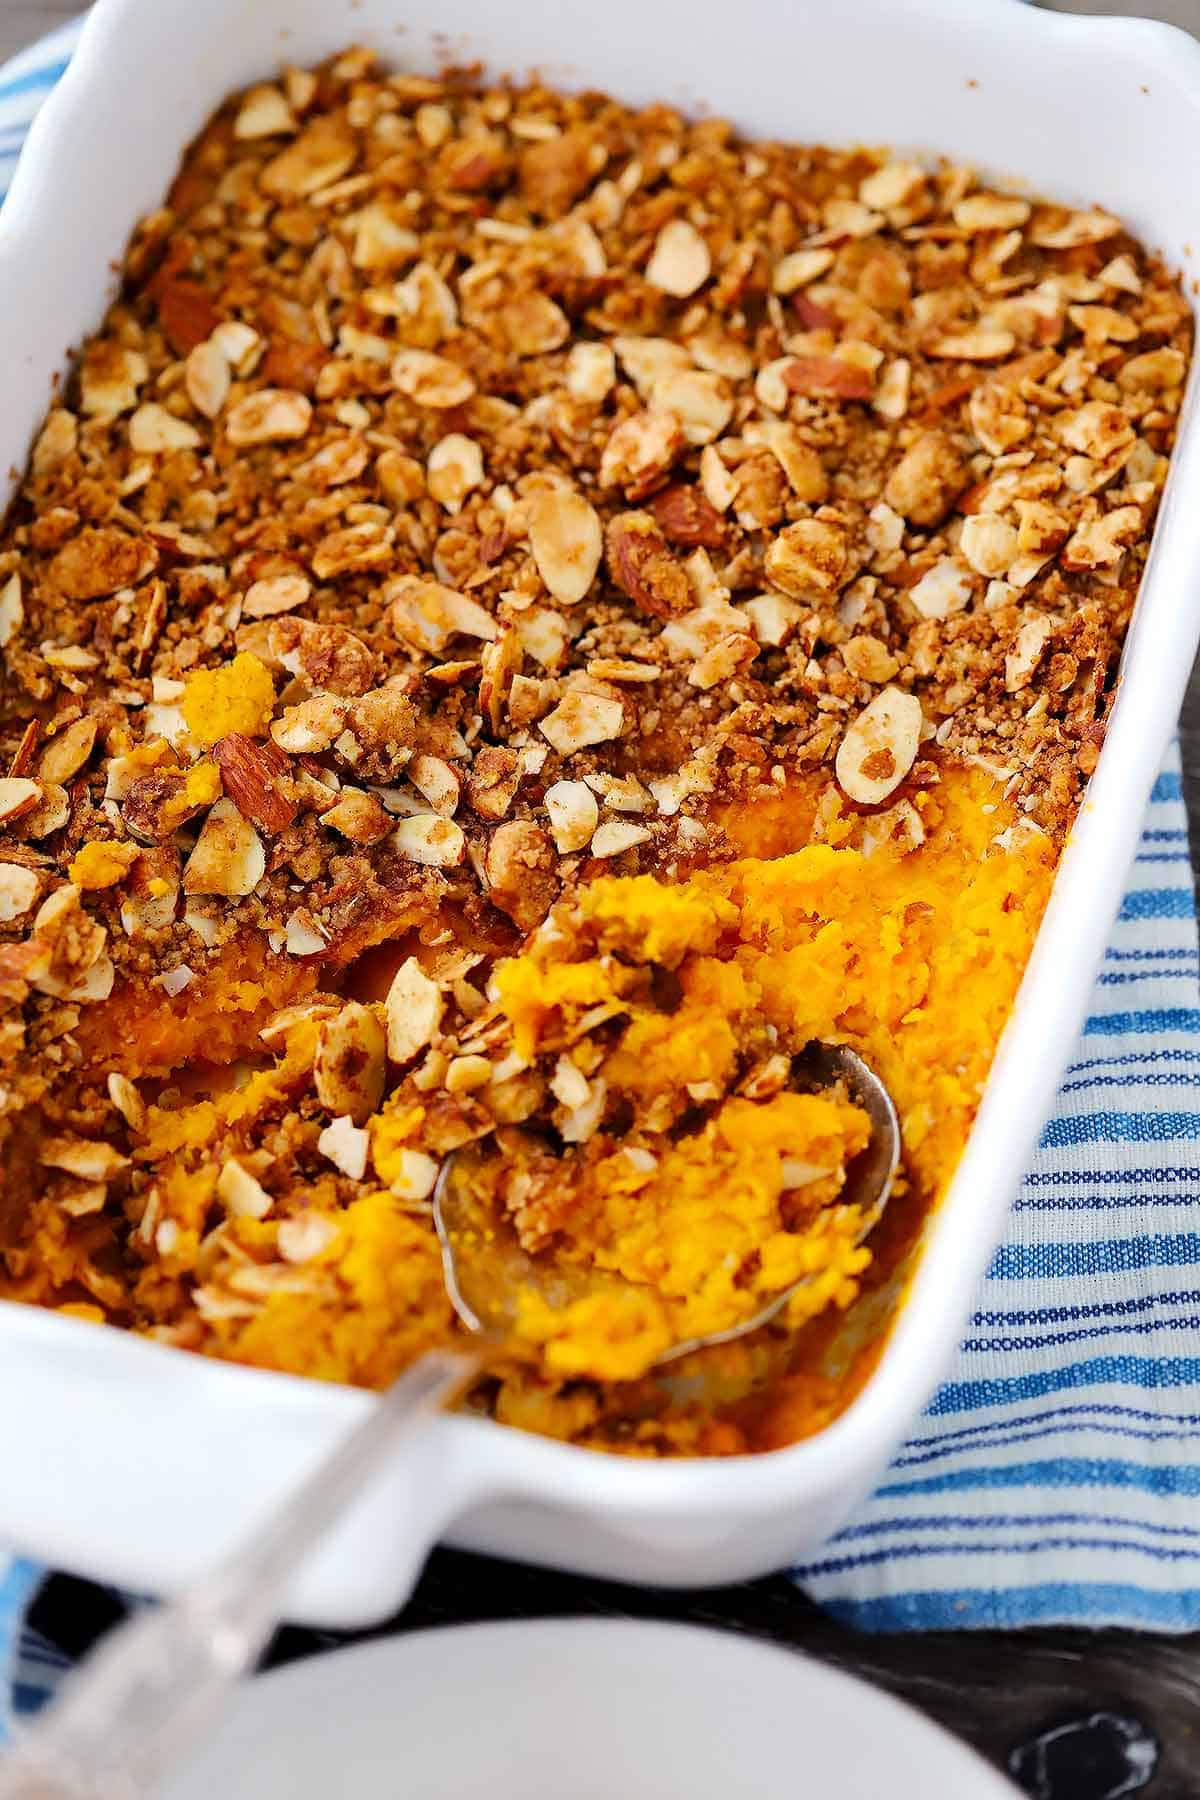 A casserole dish with sweet potato casserole and a spoon taking a scoop out.